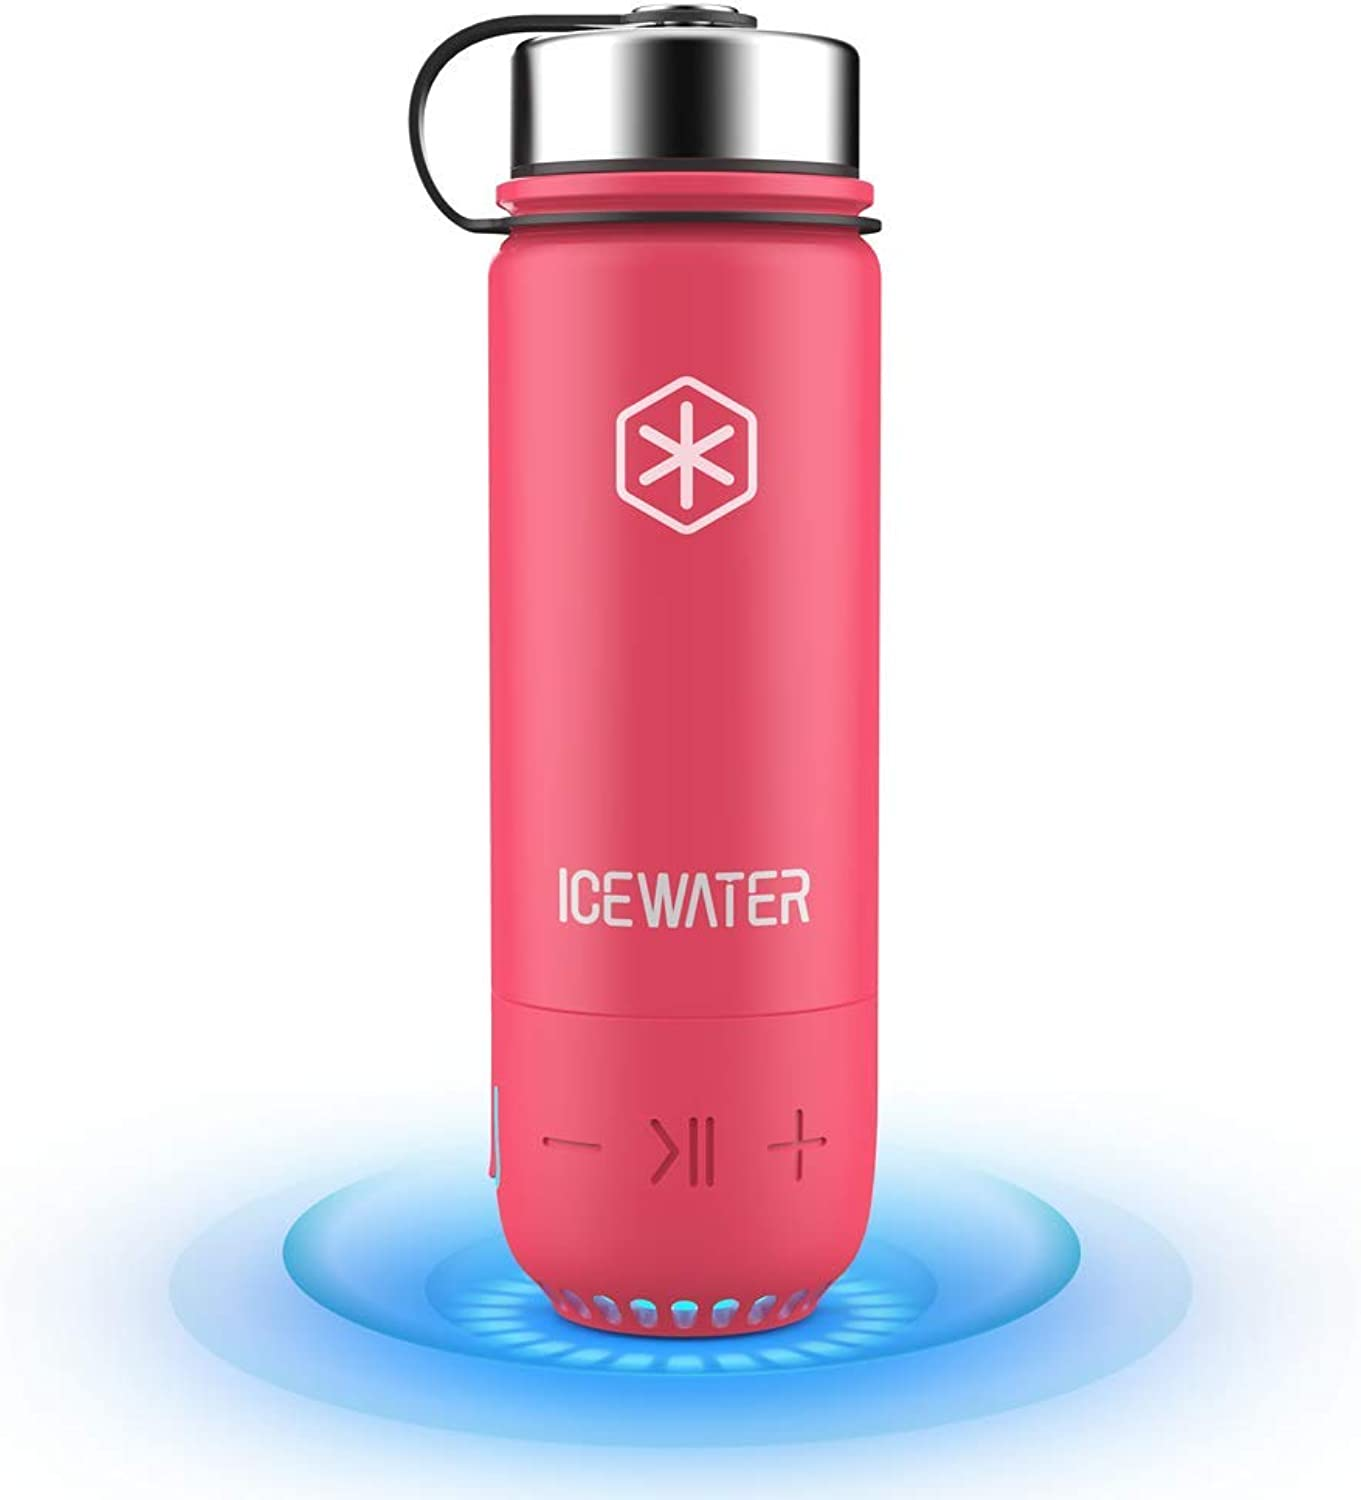 ICEWATER 3in1 Smart Stainless Steel Water Bottle(Glows to Remind You to Stay Hydrated)+blueeetooth Speaker+ Dancing Lights,20 oz,Stay Hydrated and Enjoy Music,Great Gift